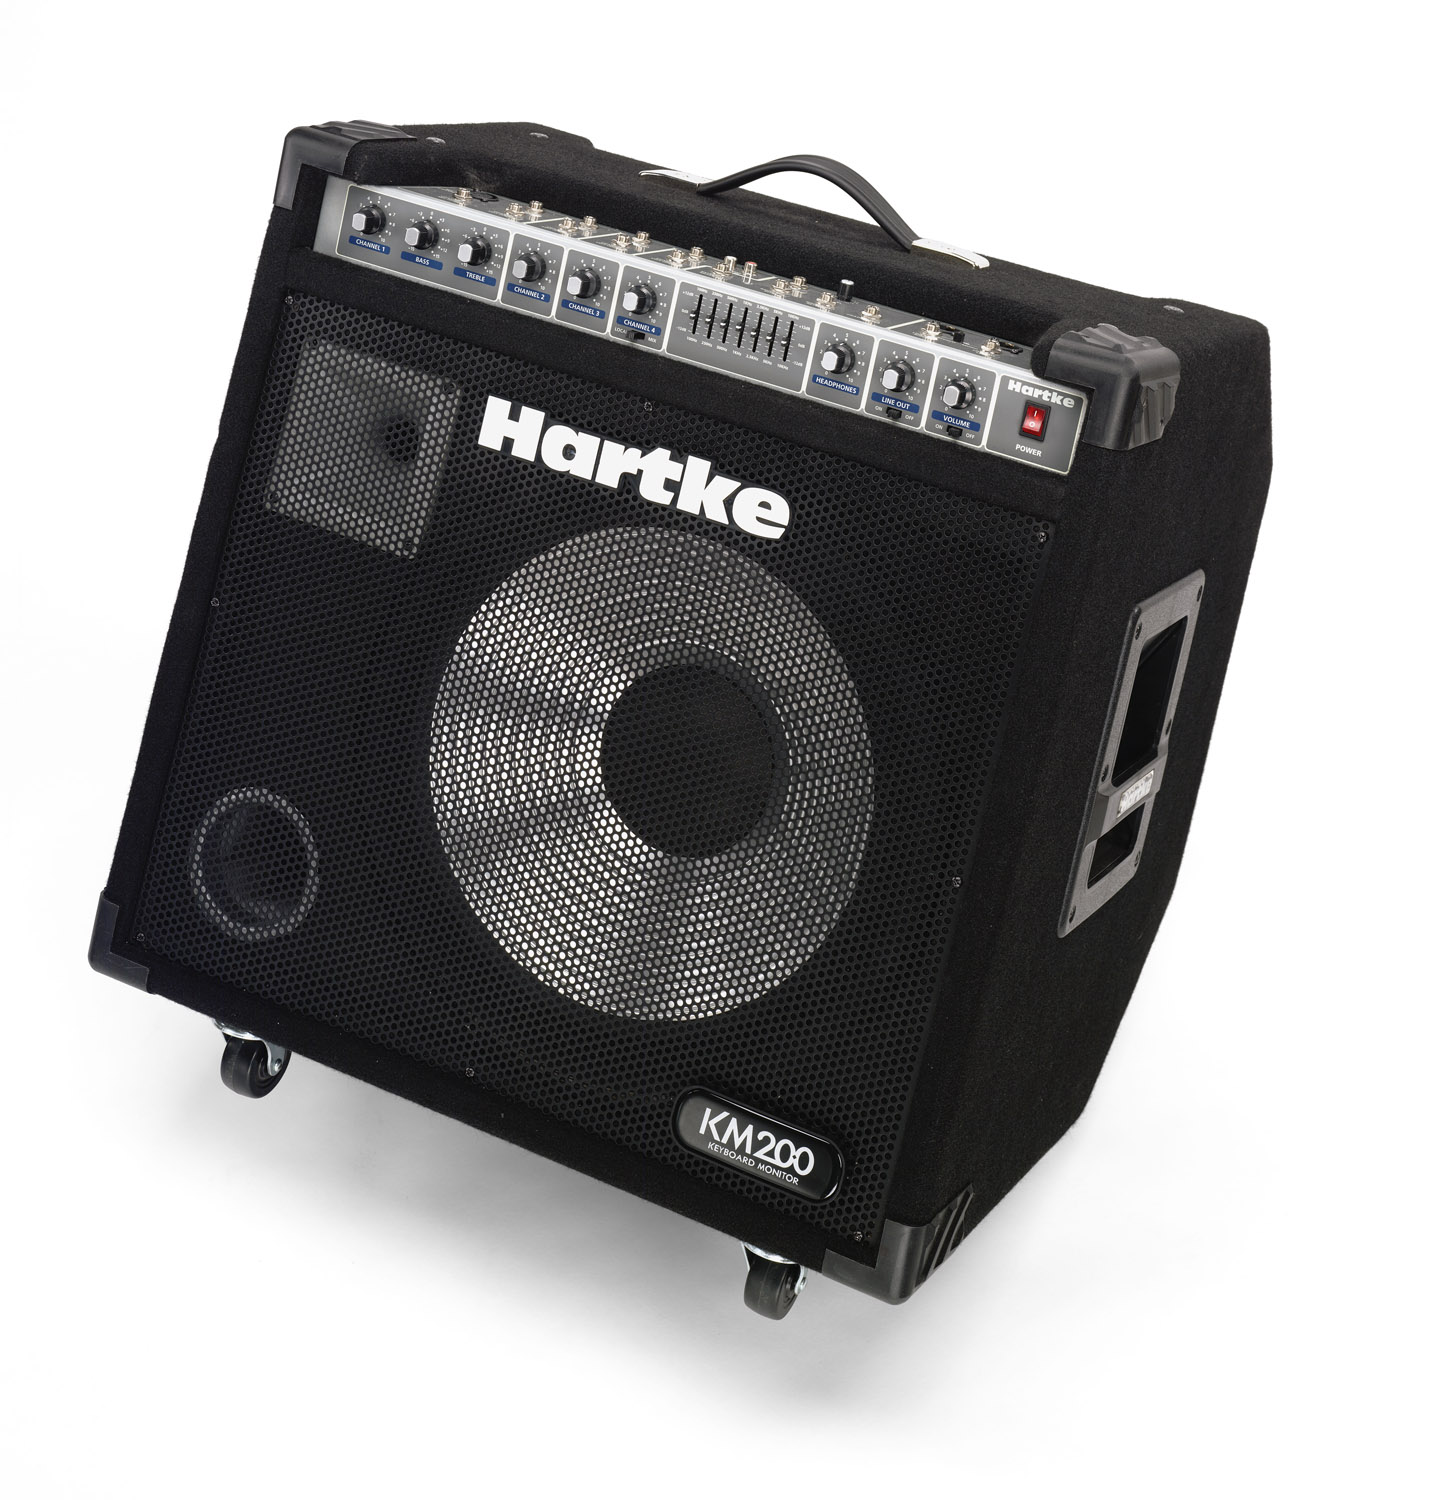 Hartke Km200 Amp Construction An Independent Amplifier Circuit Board Is Used For Keyboard Monitor Discontinued